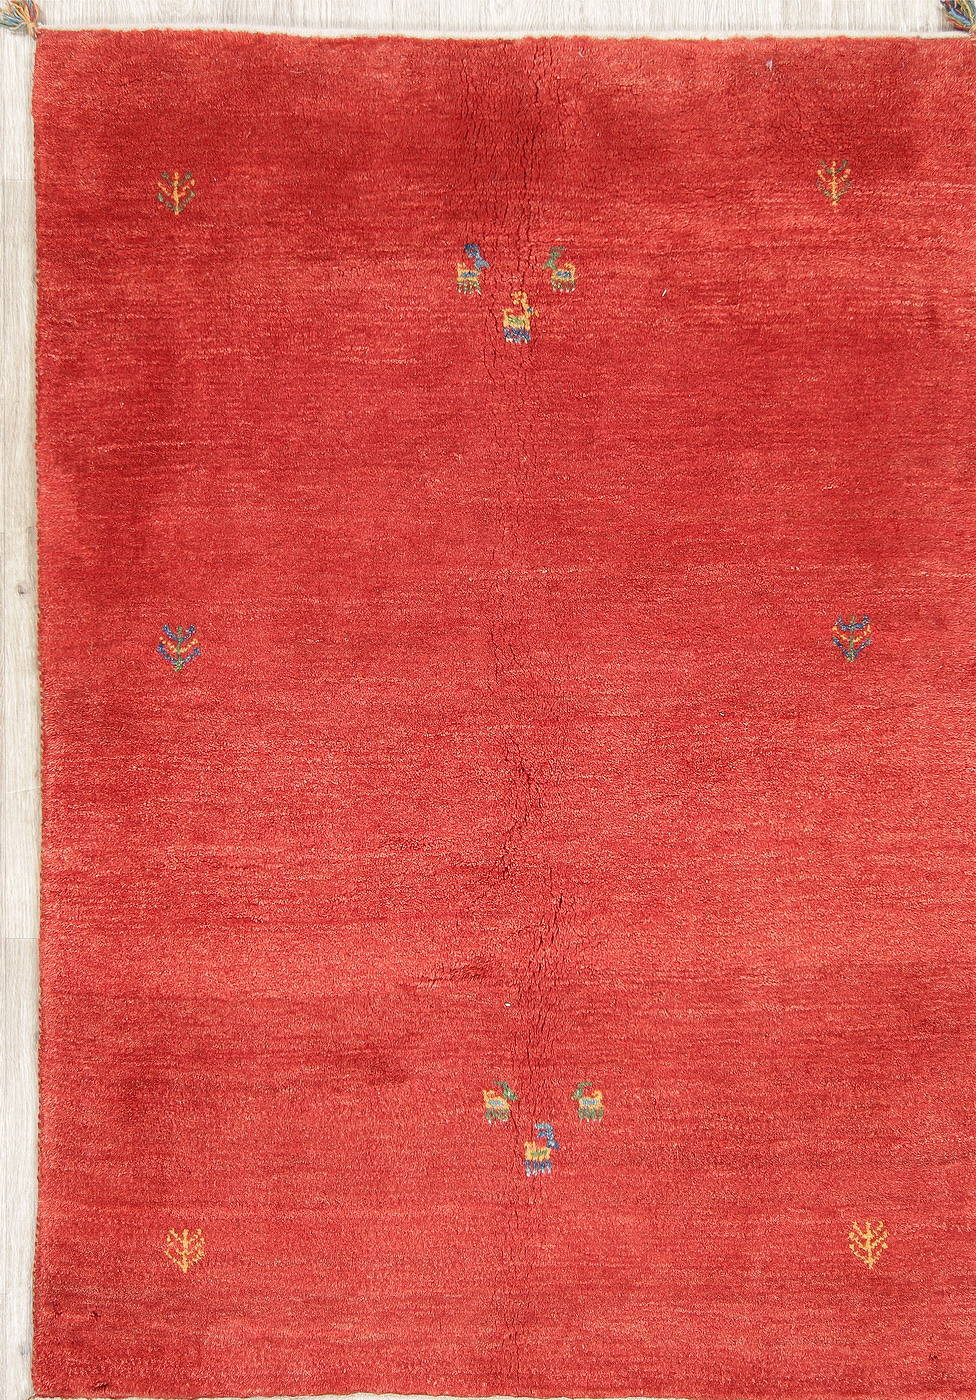 Hand-Knotted Red Gabbeh Shiraz Persian Area Wool Rug 4x6